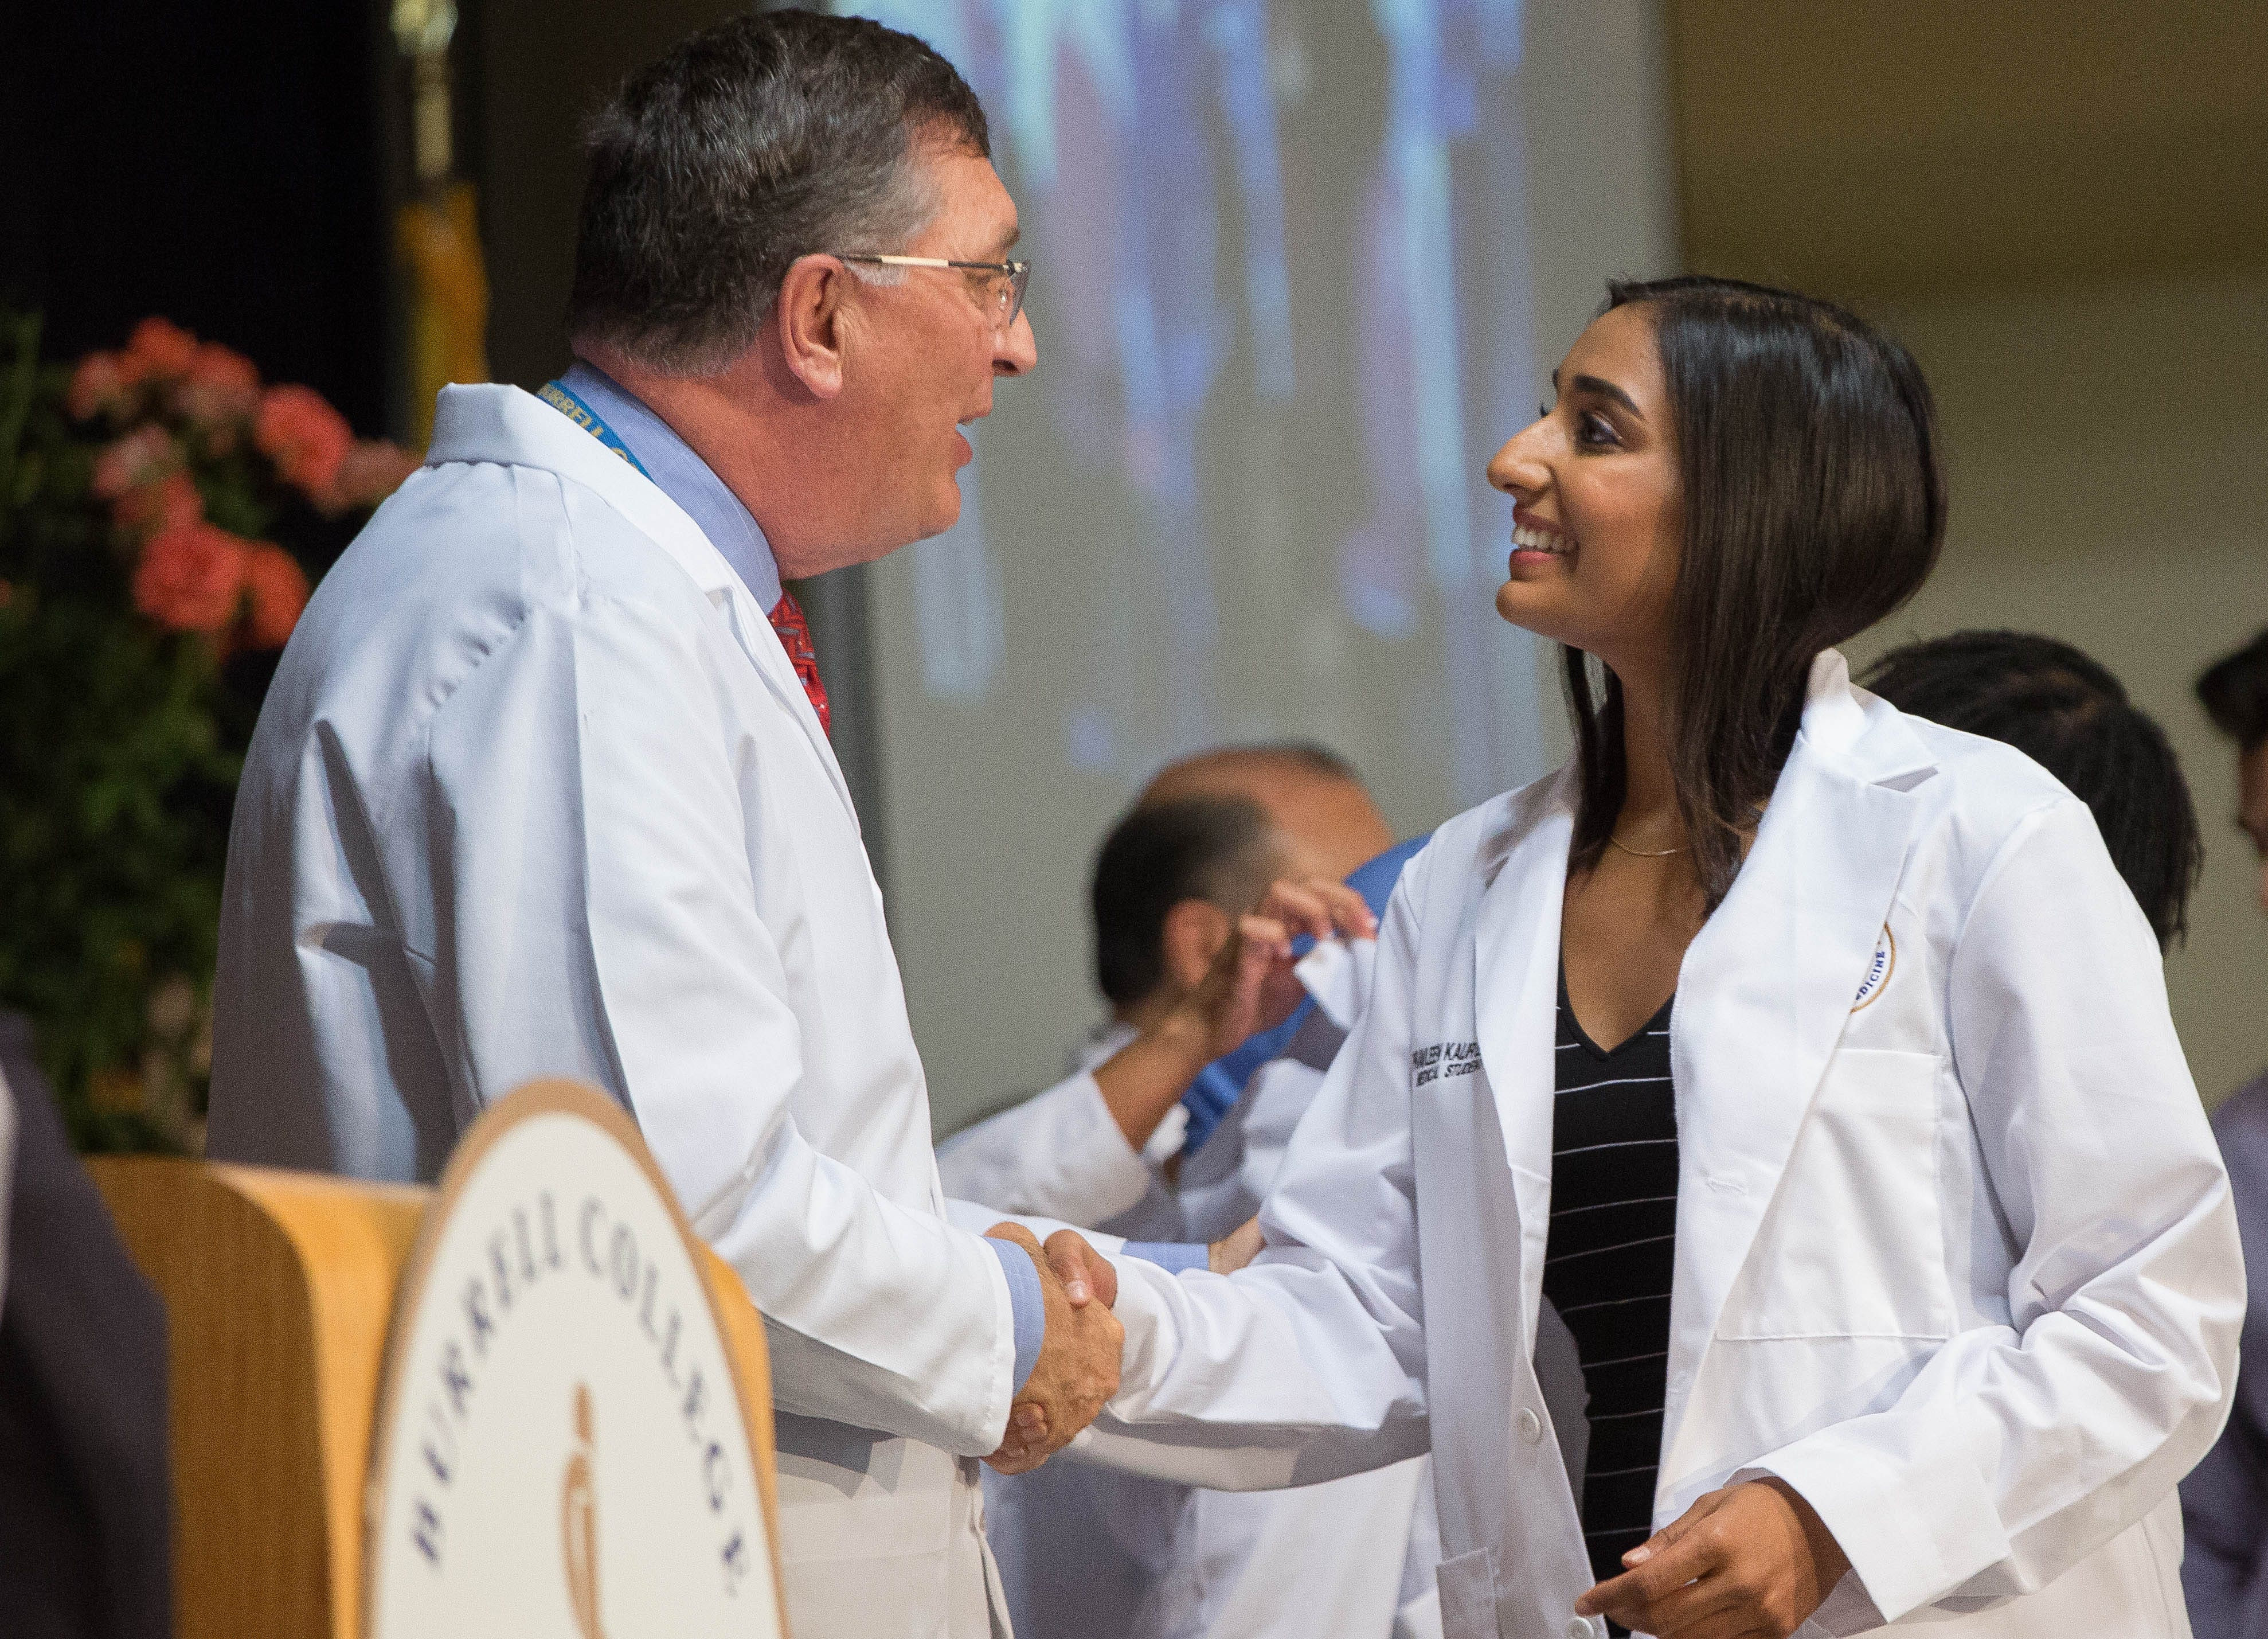 BCOM welcomes 162 first-year students during white coat ceremony | Las Cruces Sun